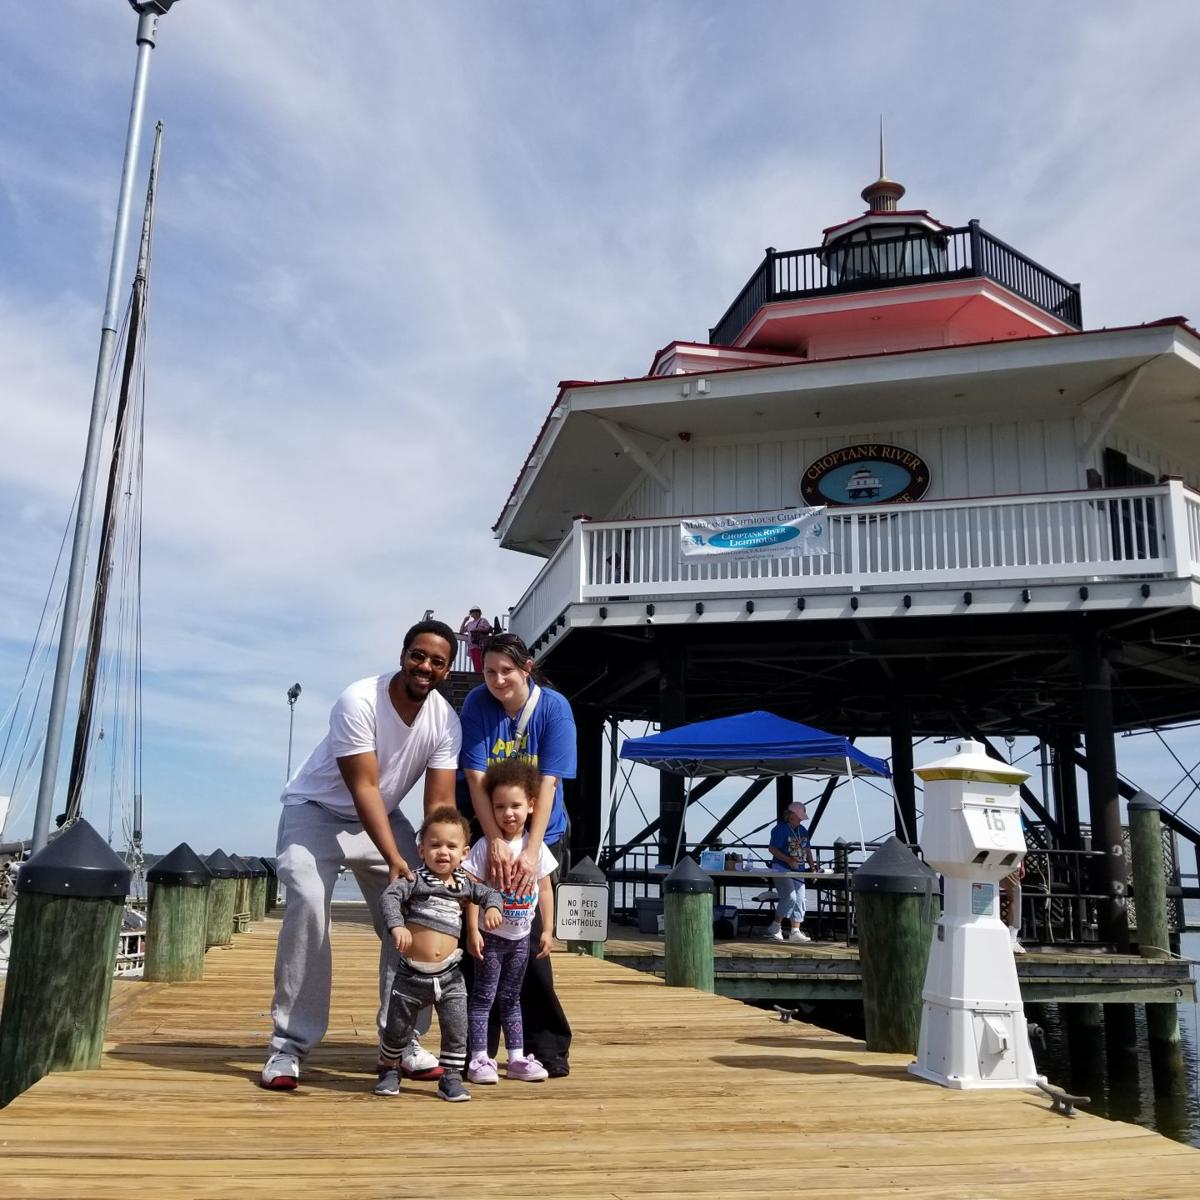 Choptank River Lighthouse sets new record